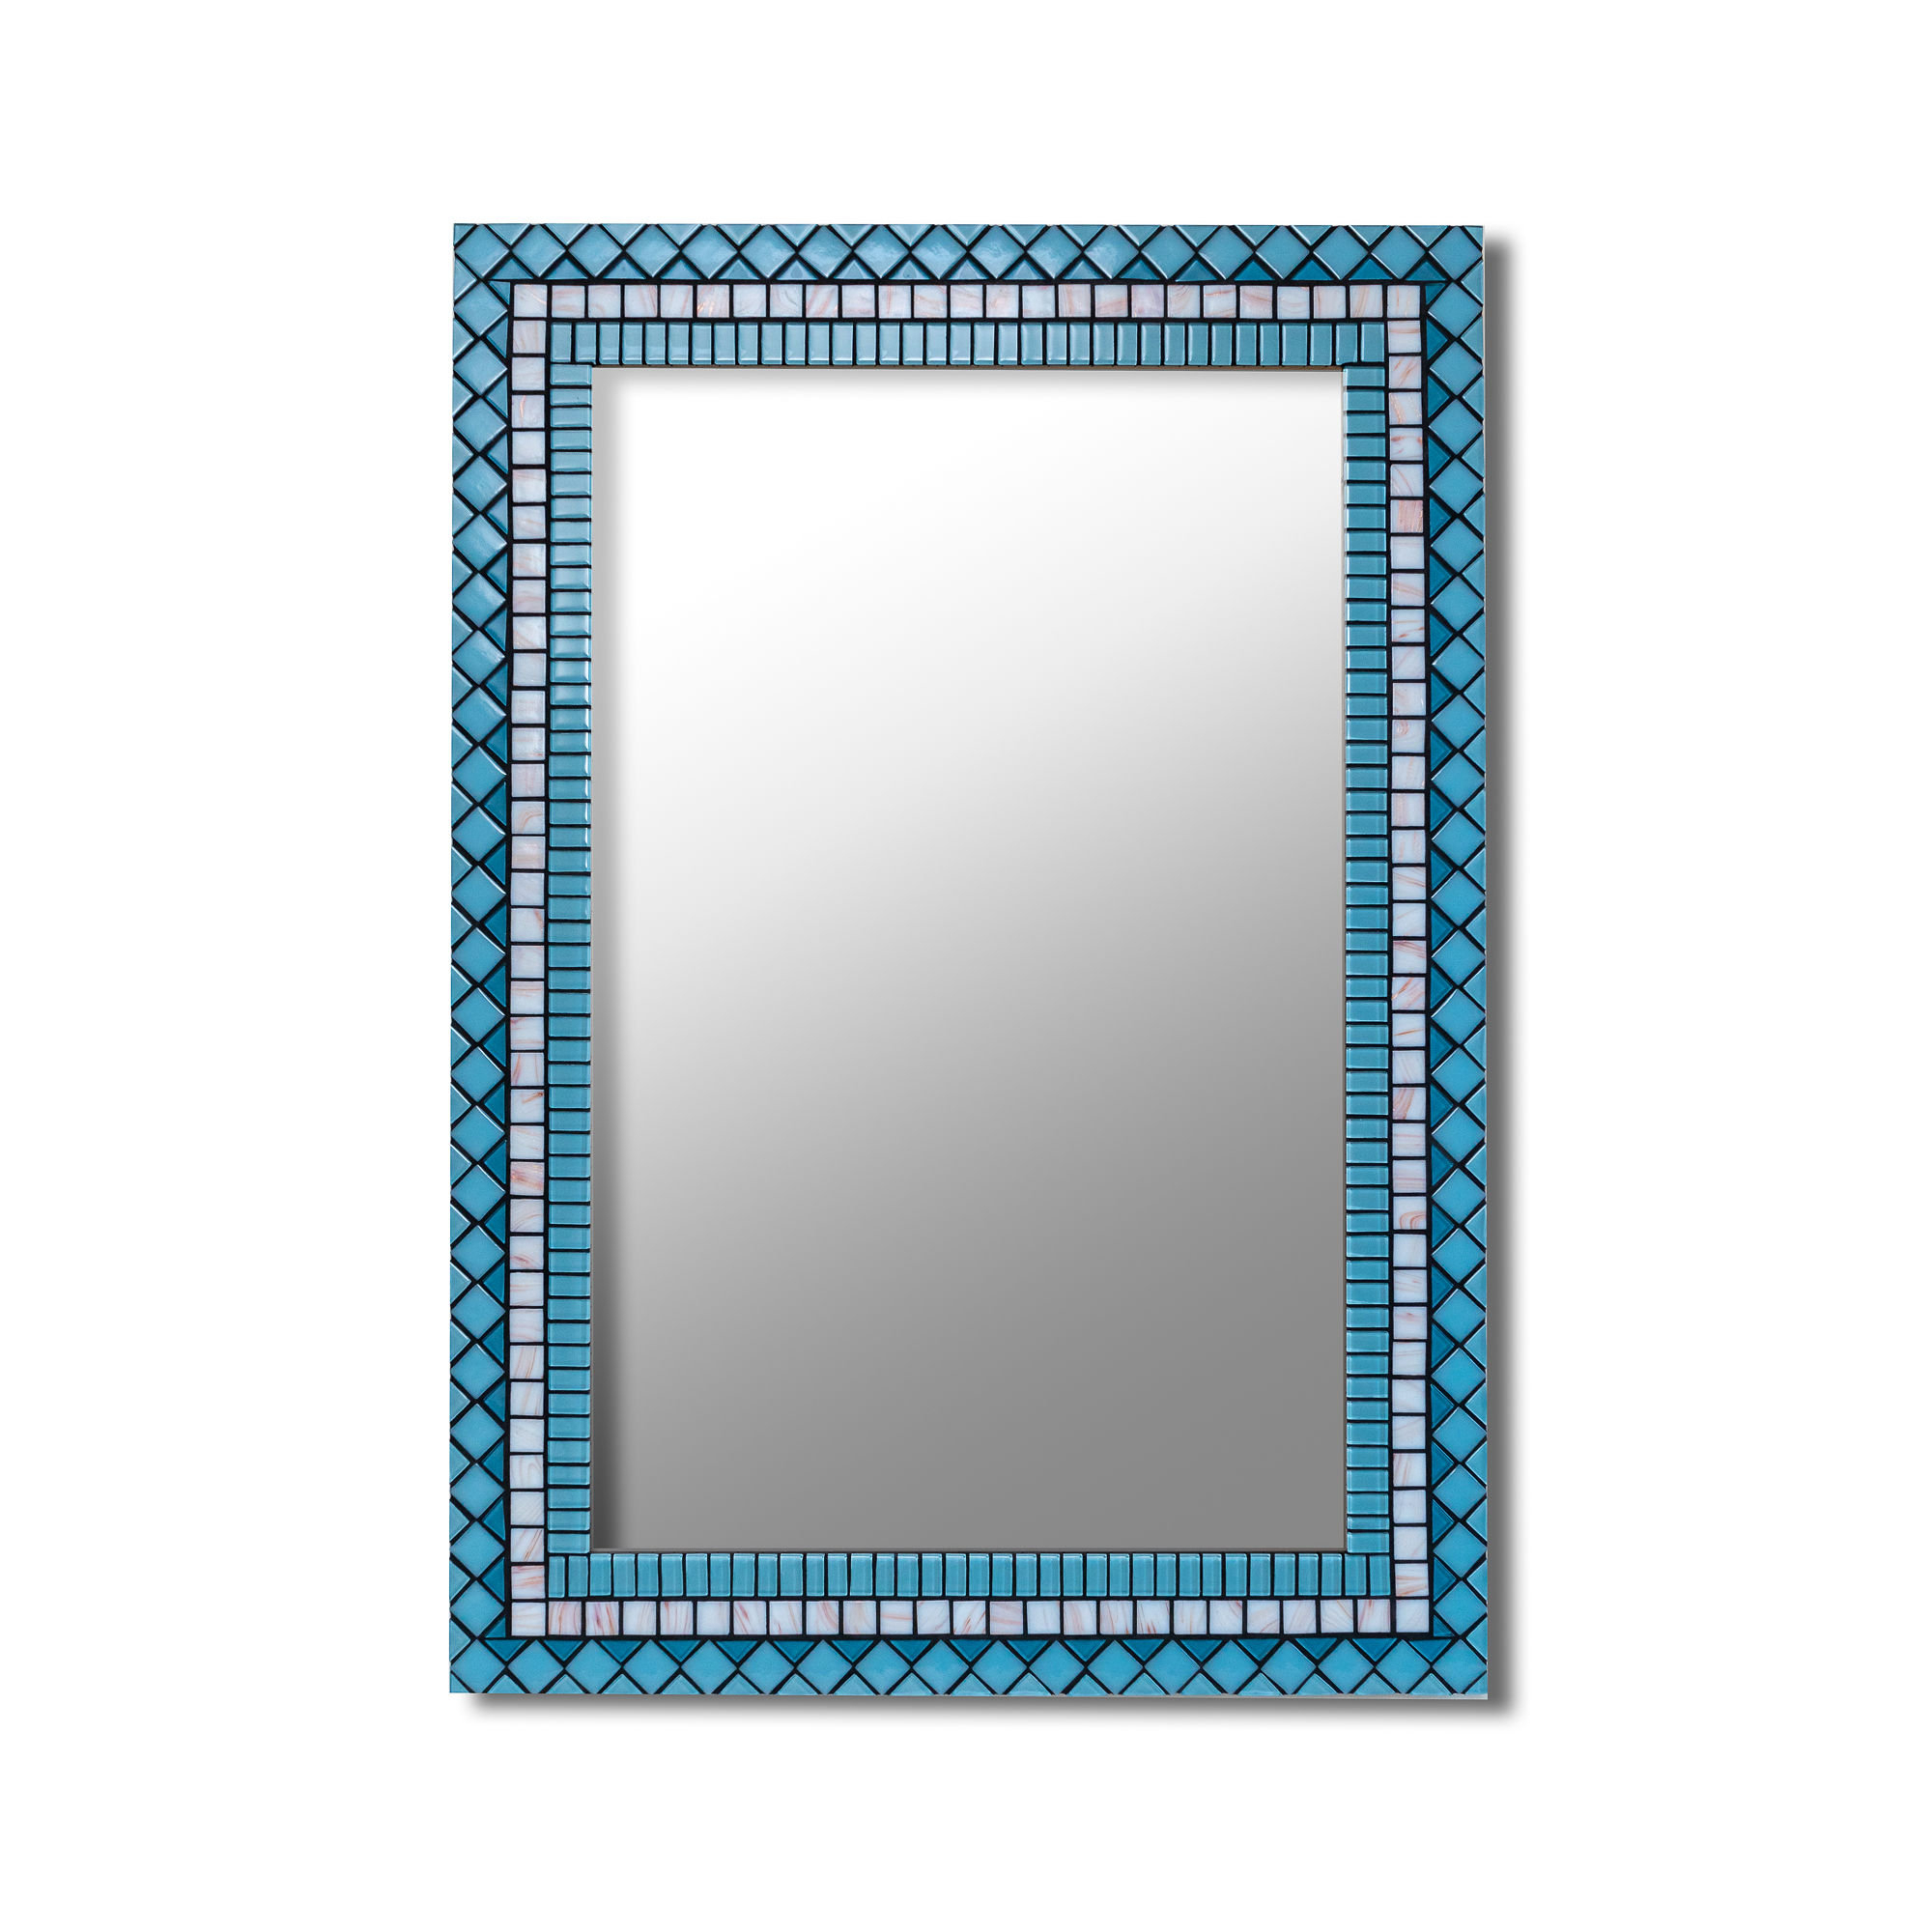 Blue Wall Mirrors With Regard To Fashionable Blue Wall Mirror, Rectangular Wall Mirror Blue, Large Wall Mirror, Decorative Wall Mirror Horizontal, Mirror For Dresser, Mosaic Tile Mirror (View 5 of 20)